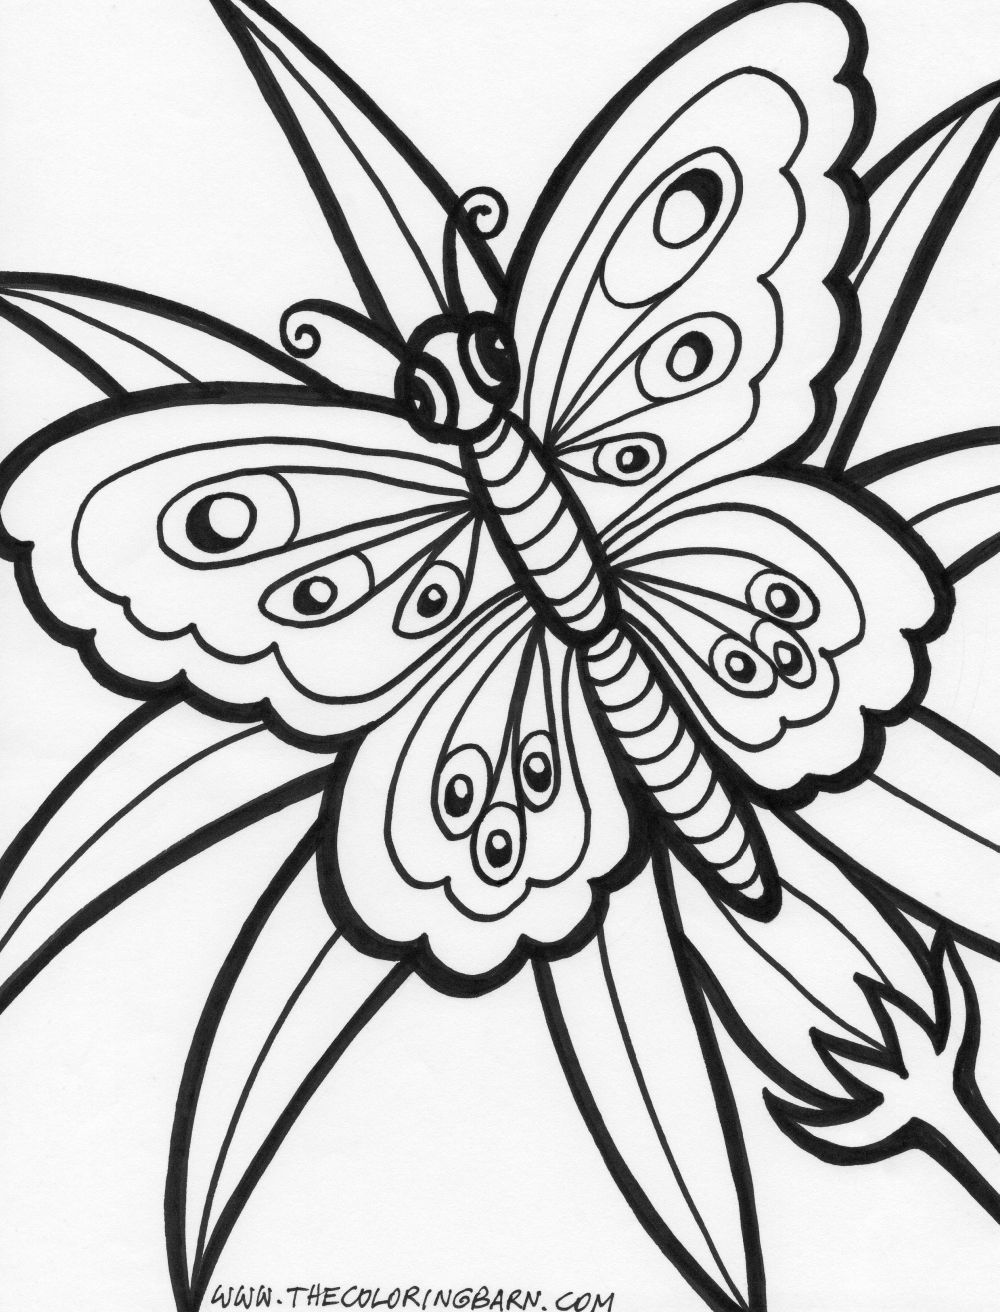 large coloring pages for adults - photo#6